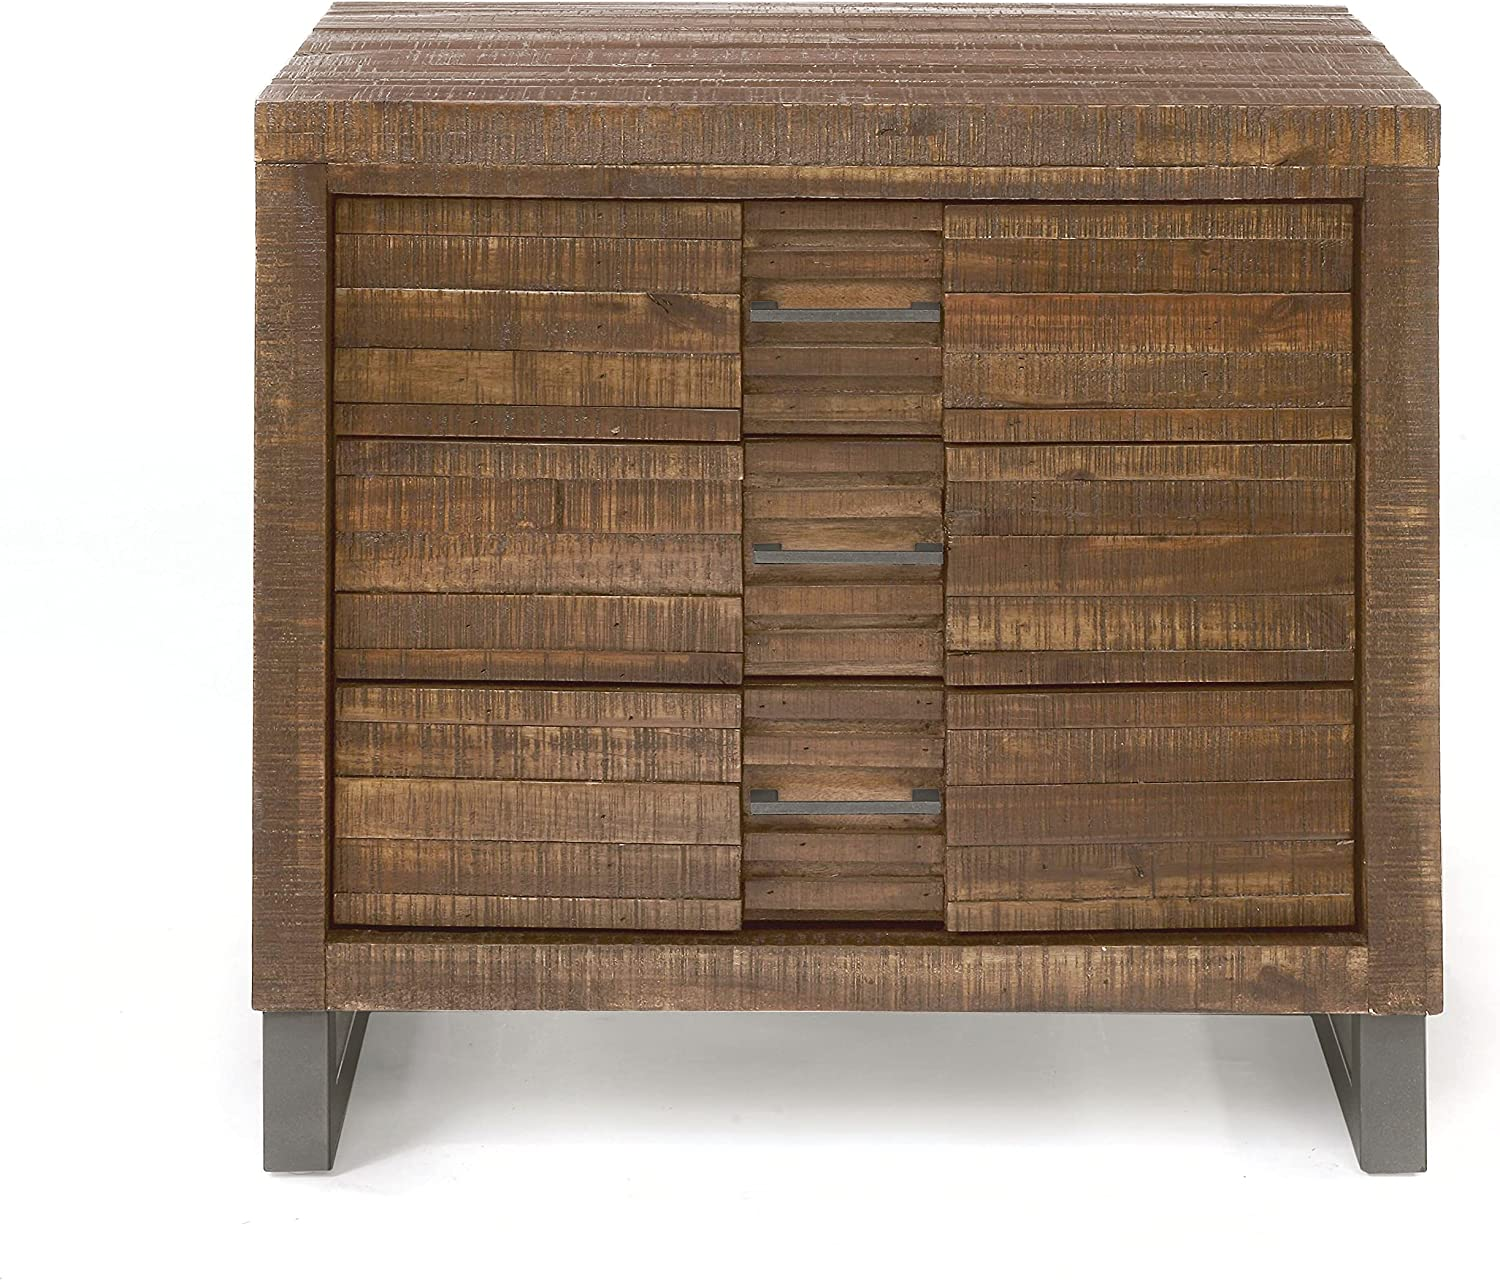 Sofa Table for Max 71% OFF Living OFFicial Room Nightstand with Cabinet Narro Drawer